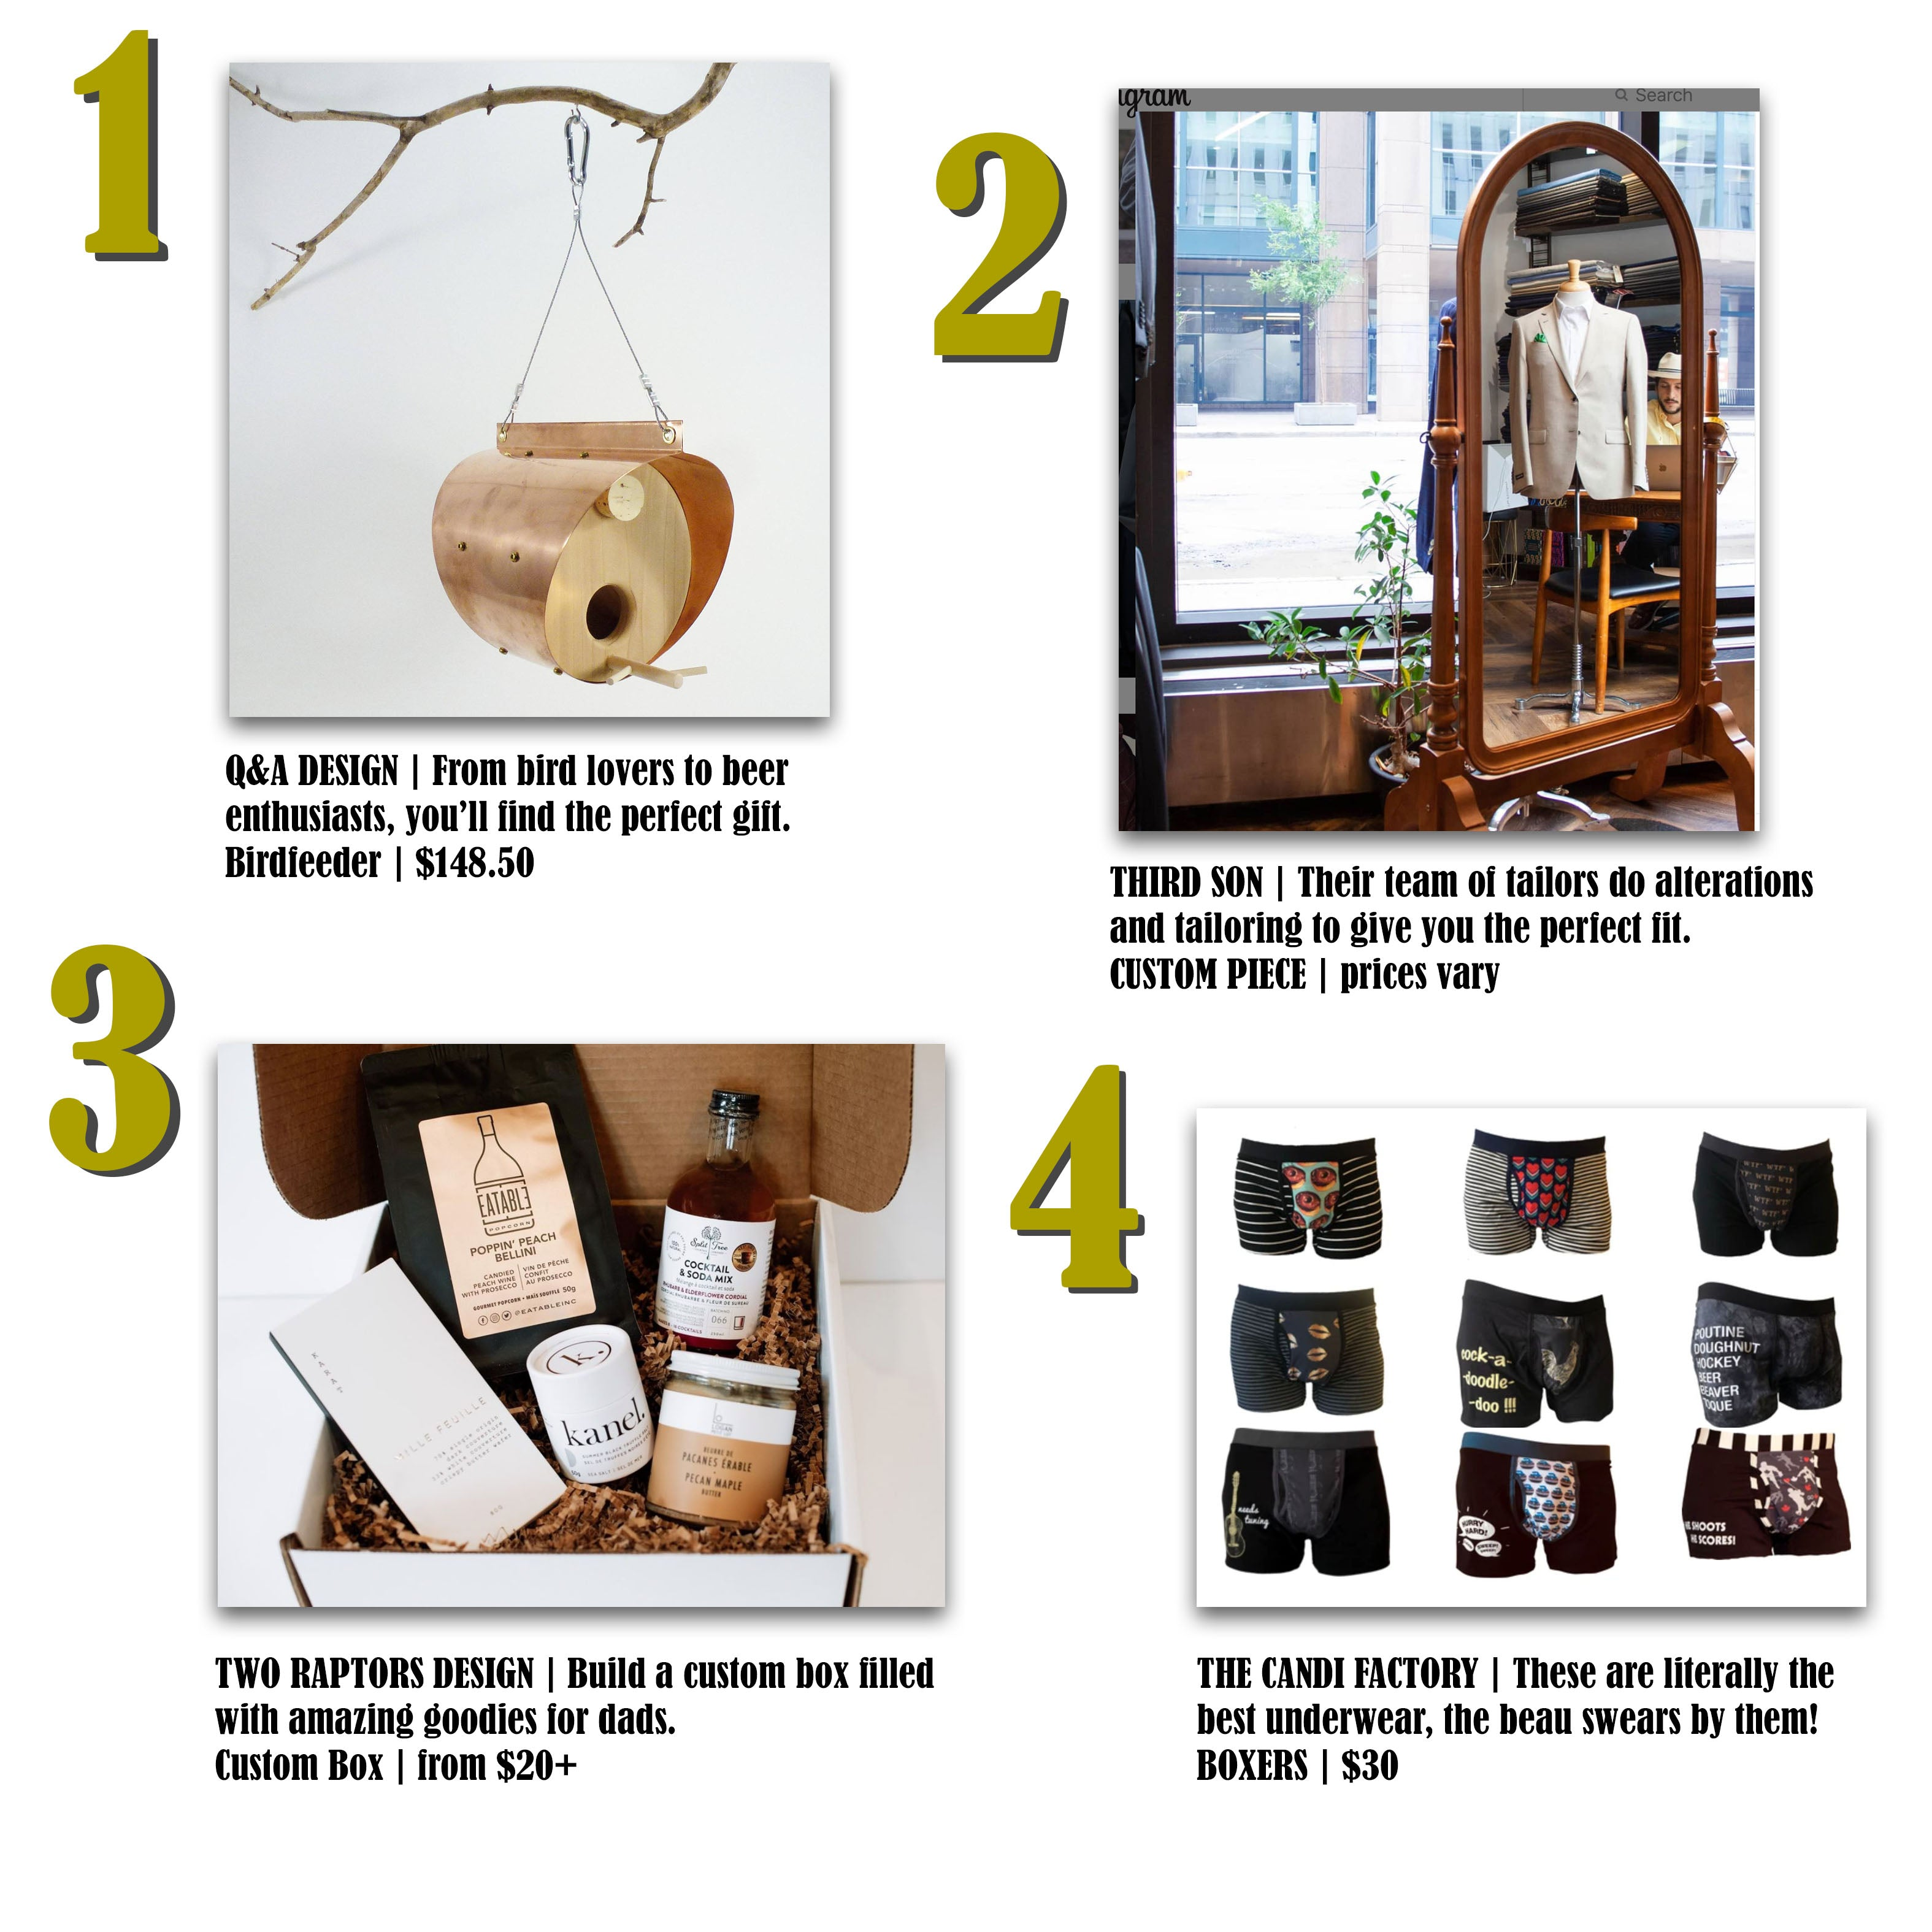 Q&A Design, Third Son Tailor, Two Raptors Gift Box and The Candi Factory